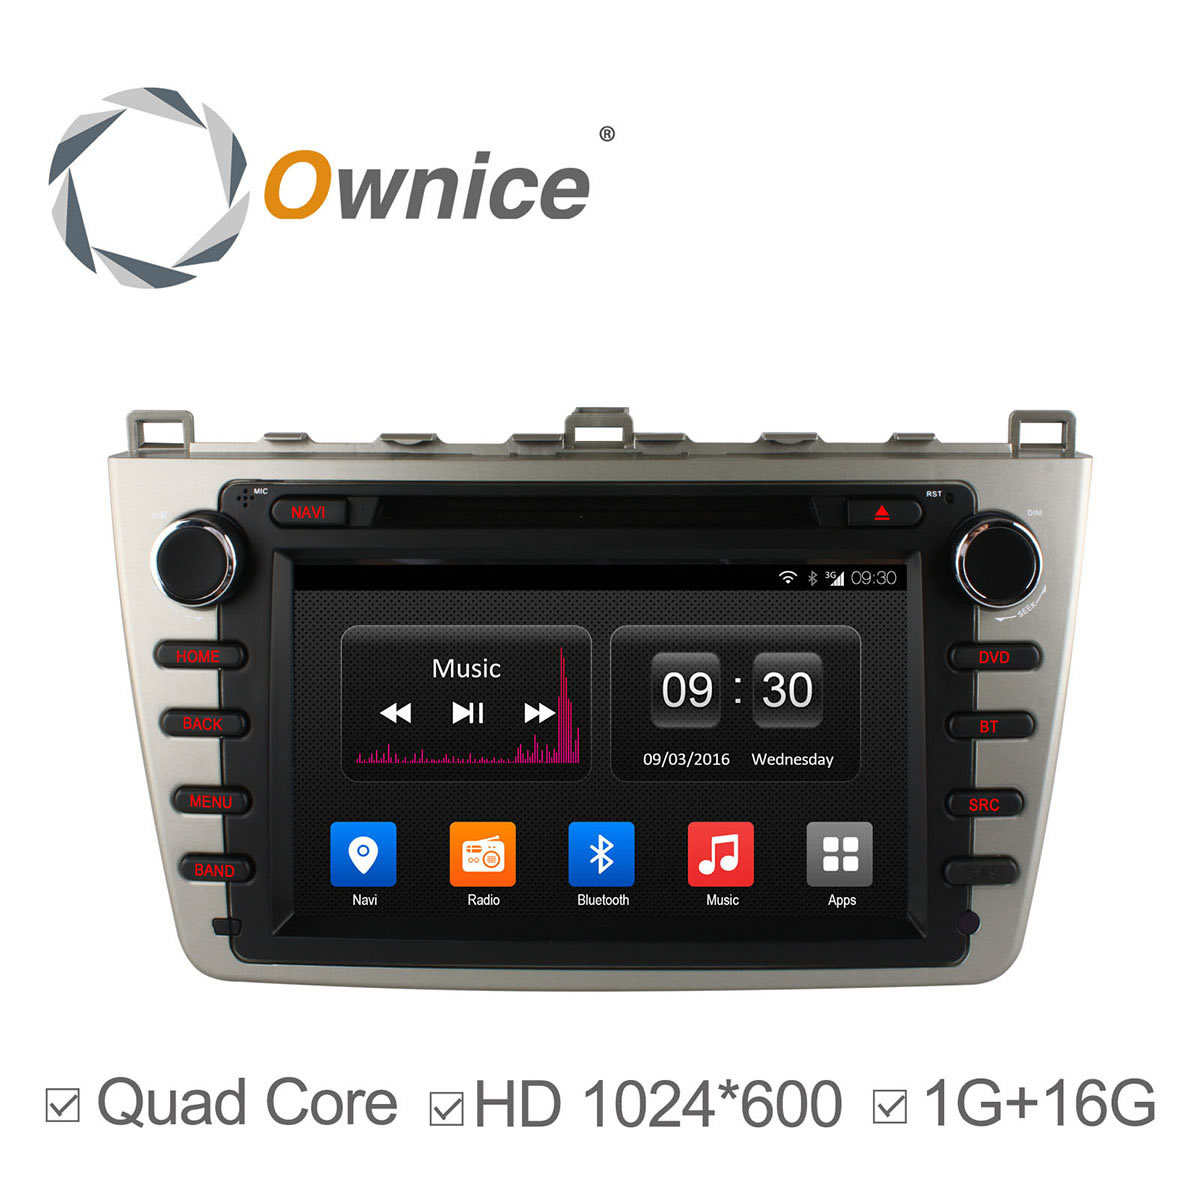 ownice quad core android4 4 car dvd gps for mazda 6 2008 2012 autoradio multimedia with wifi. Black Bedroom Furniture Sets. Home Design Ideas